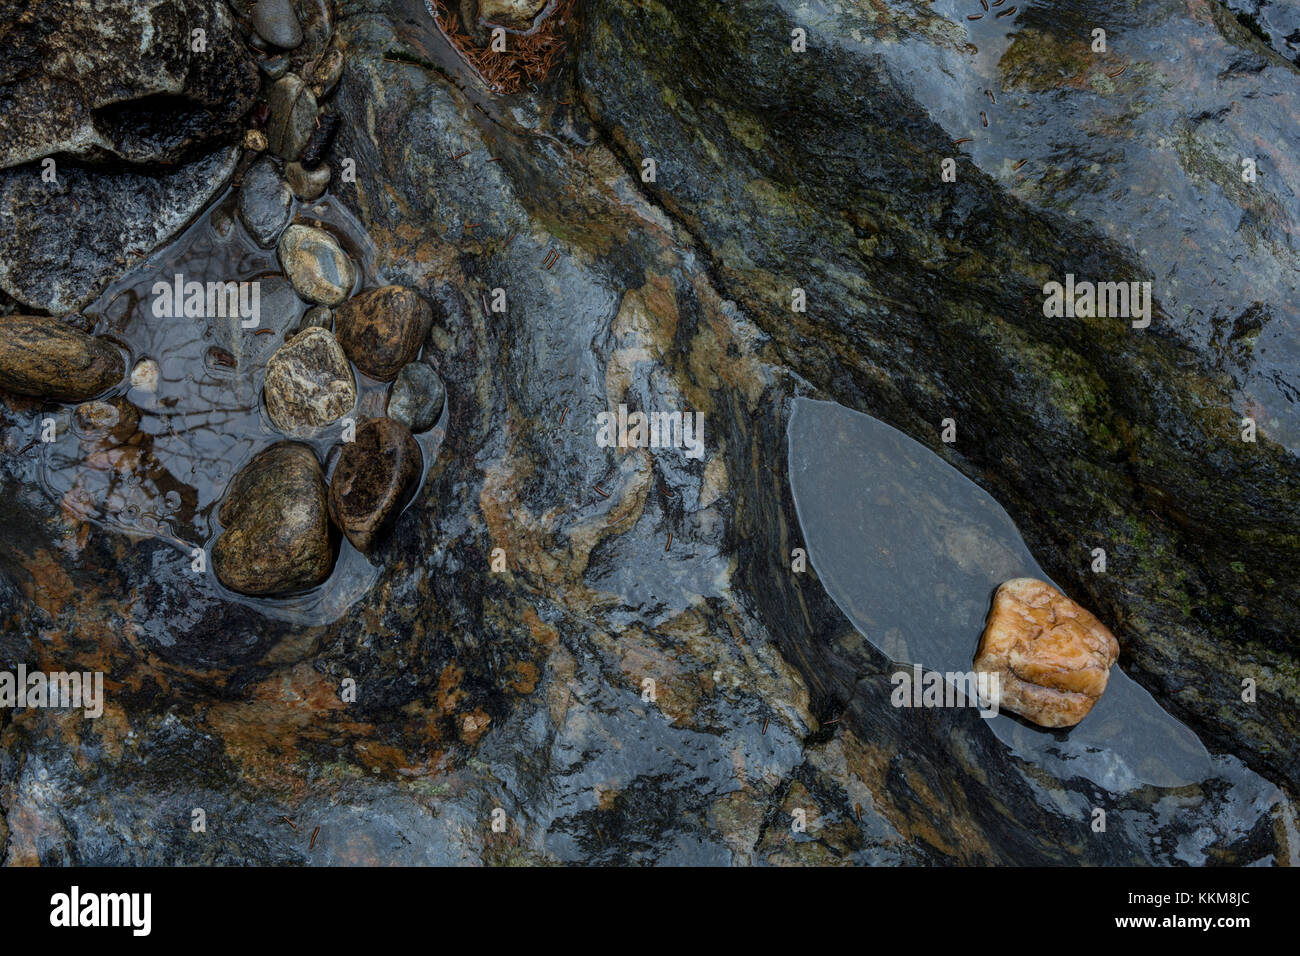 Stones in the stream course of the Schwarzer Regen, Bavarian Forest, Bavaria, Germany, - Stock Image